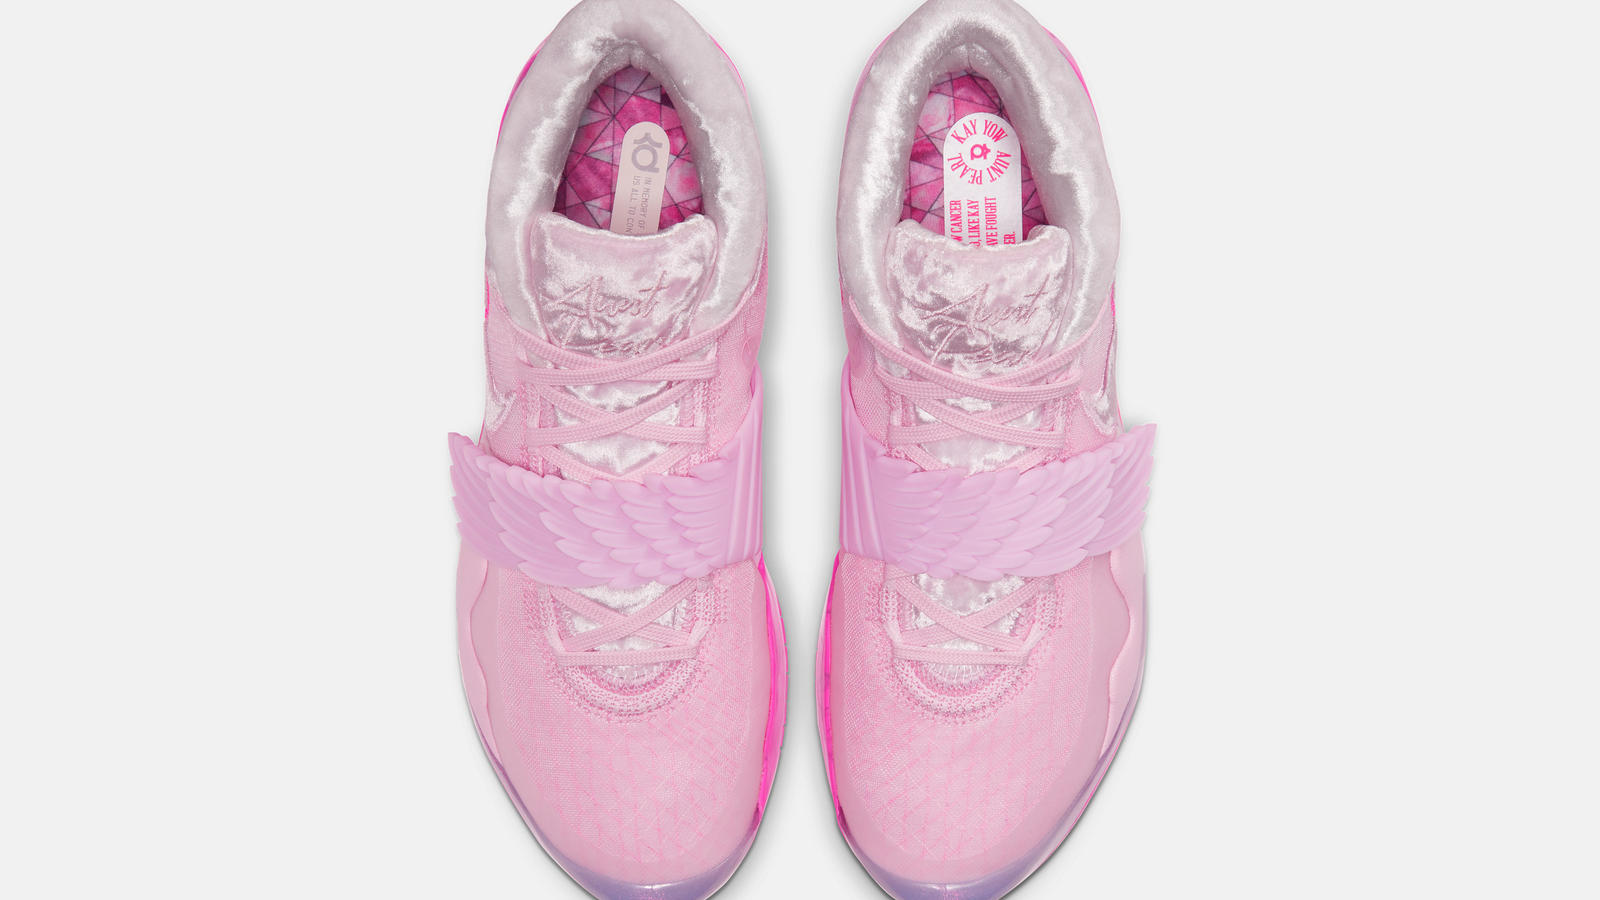 KD12 Aunt Pearl Official Images 0